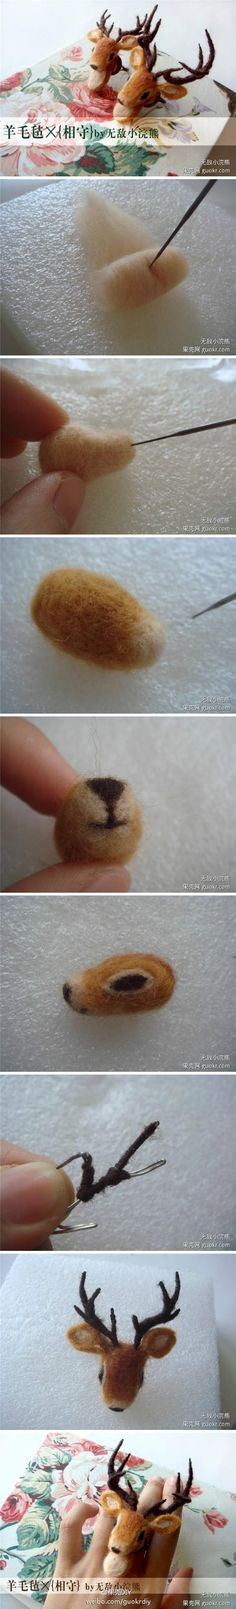 How to needle felt a deer head - needle felting pictorial tutorial. Needle felting a taxidermy deer. diy